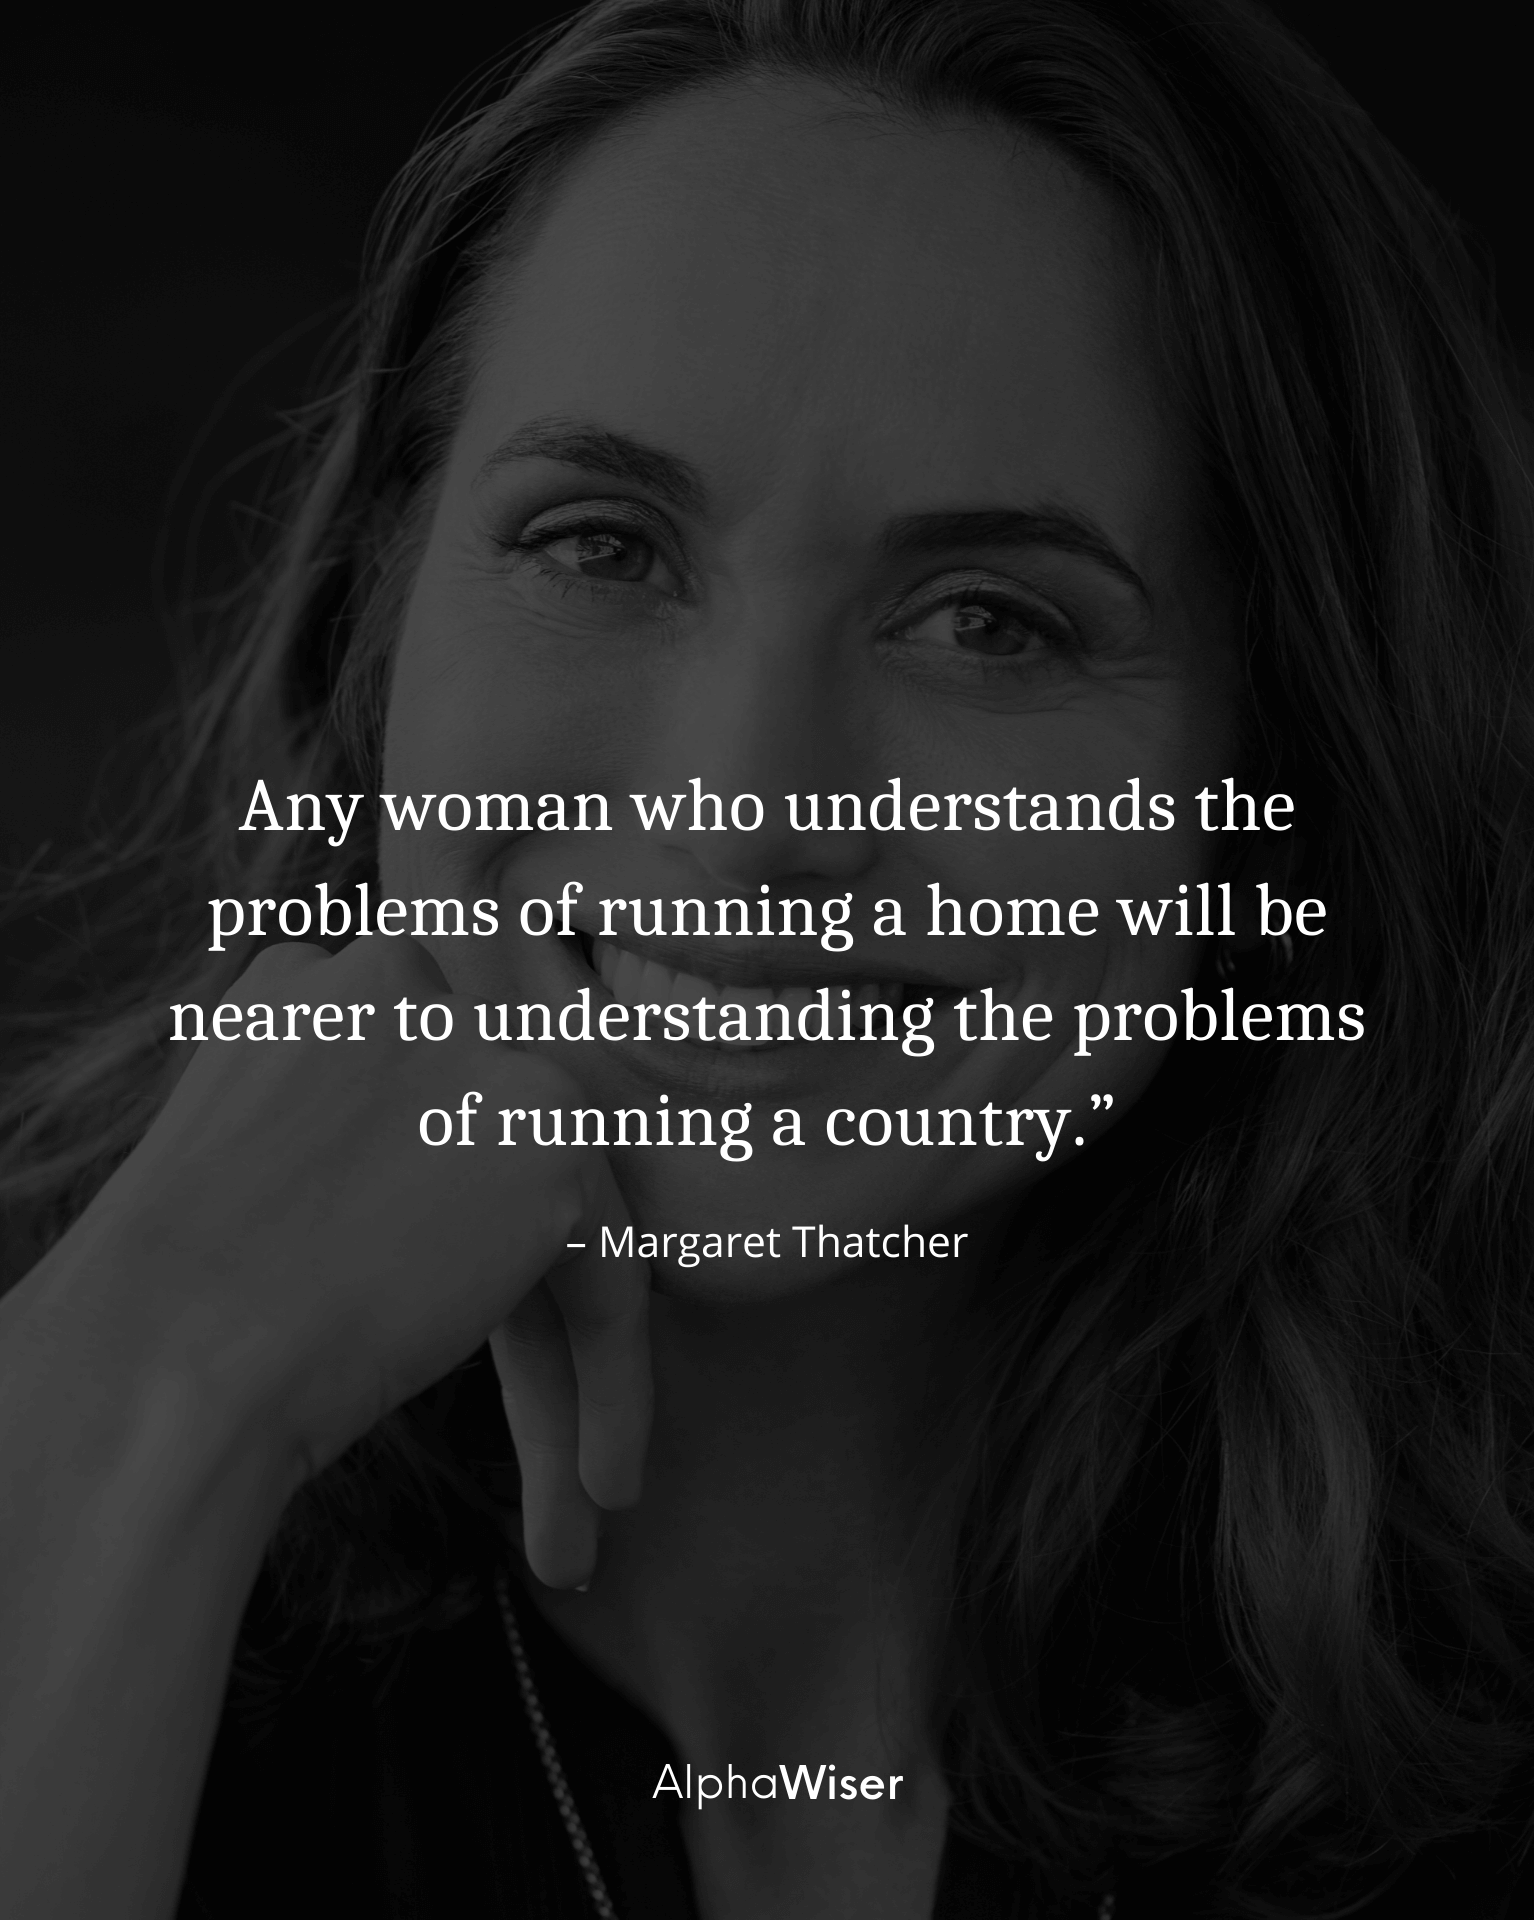 Any woman who understands the problems of running a home will be nearer to understanding the problems of running a country.